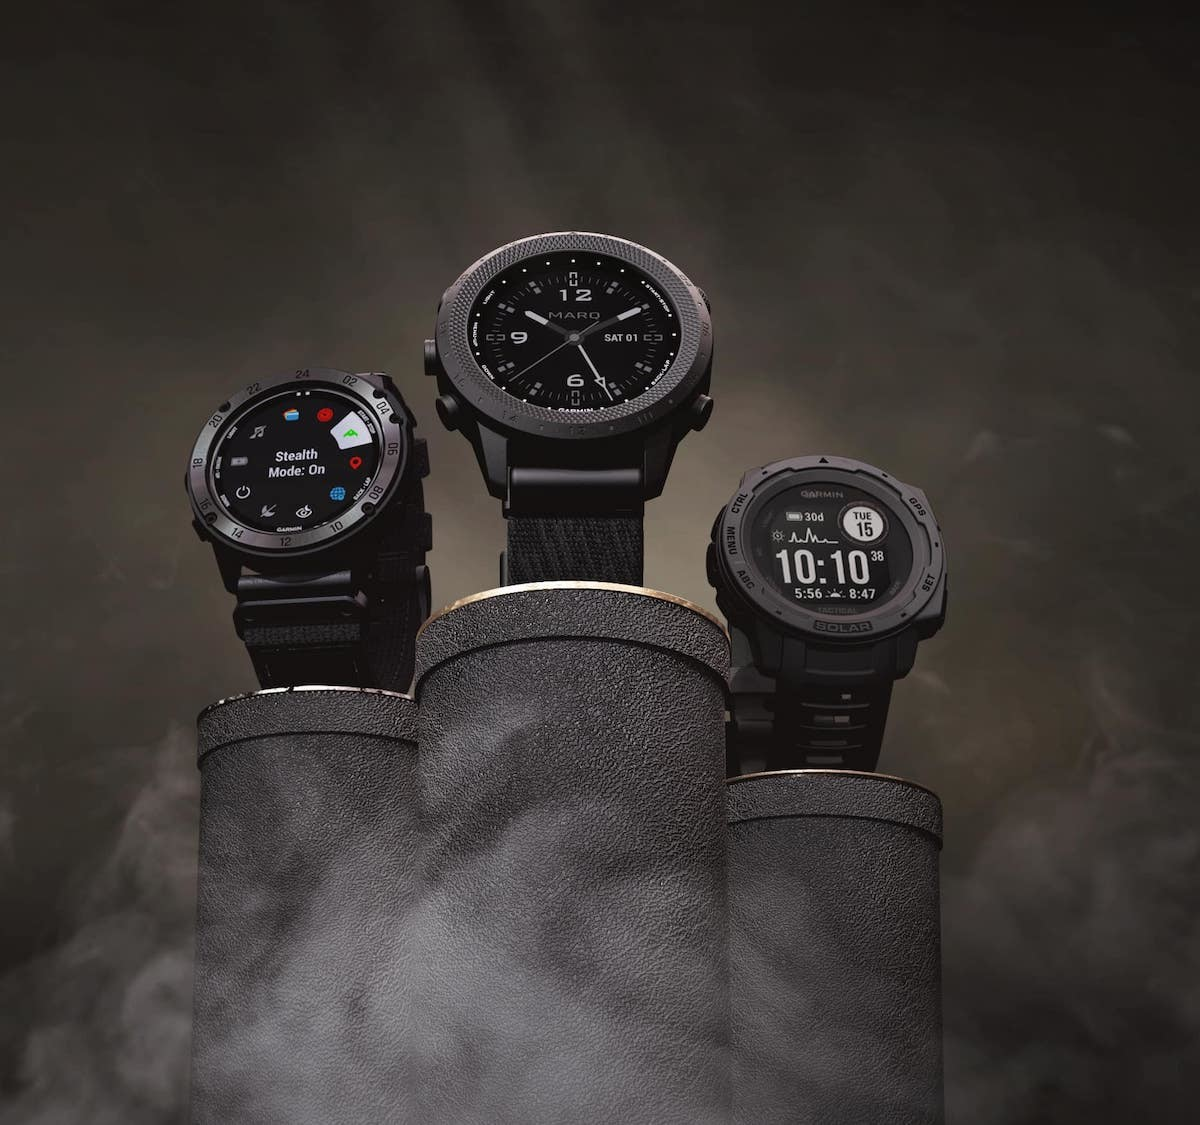 Garmin tactix Delta Solar Series specialized GPS smartwatches have a 24-day battery life